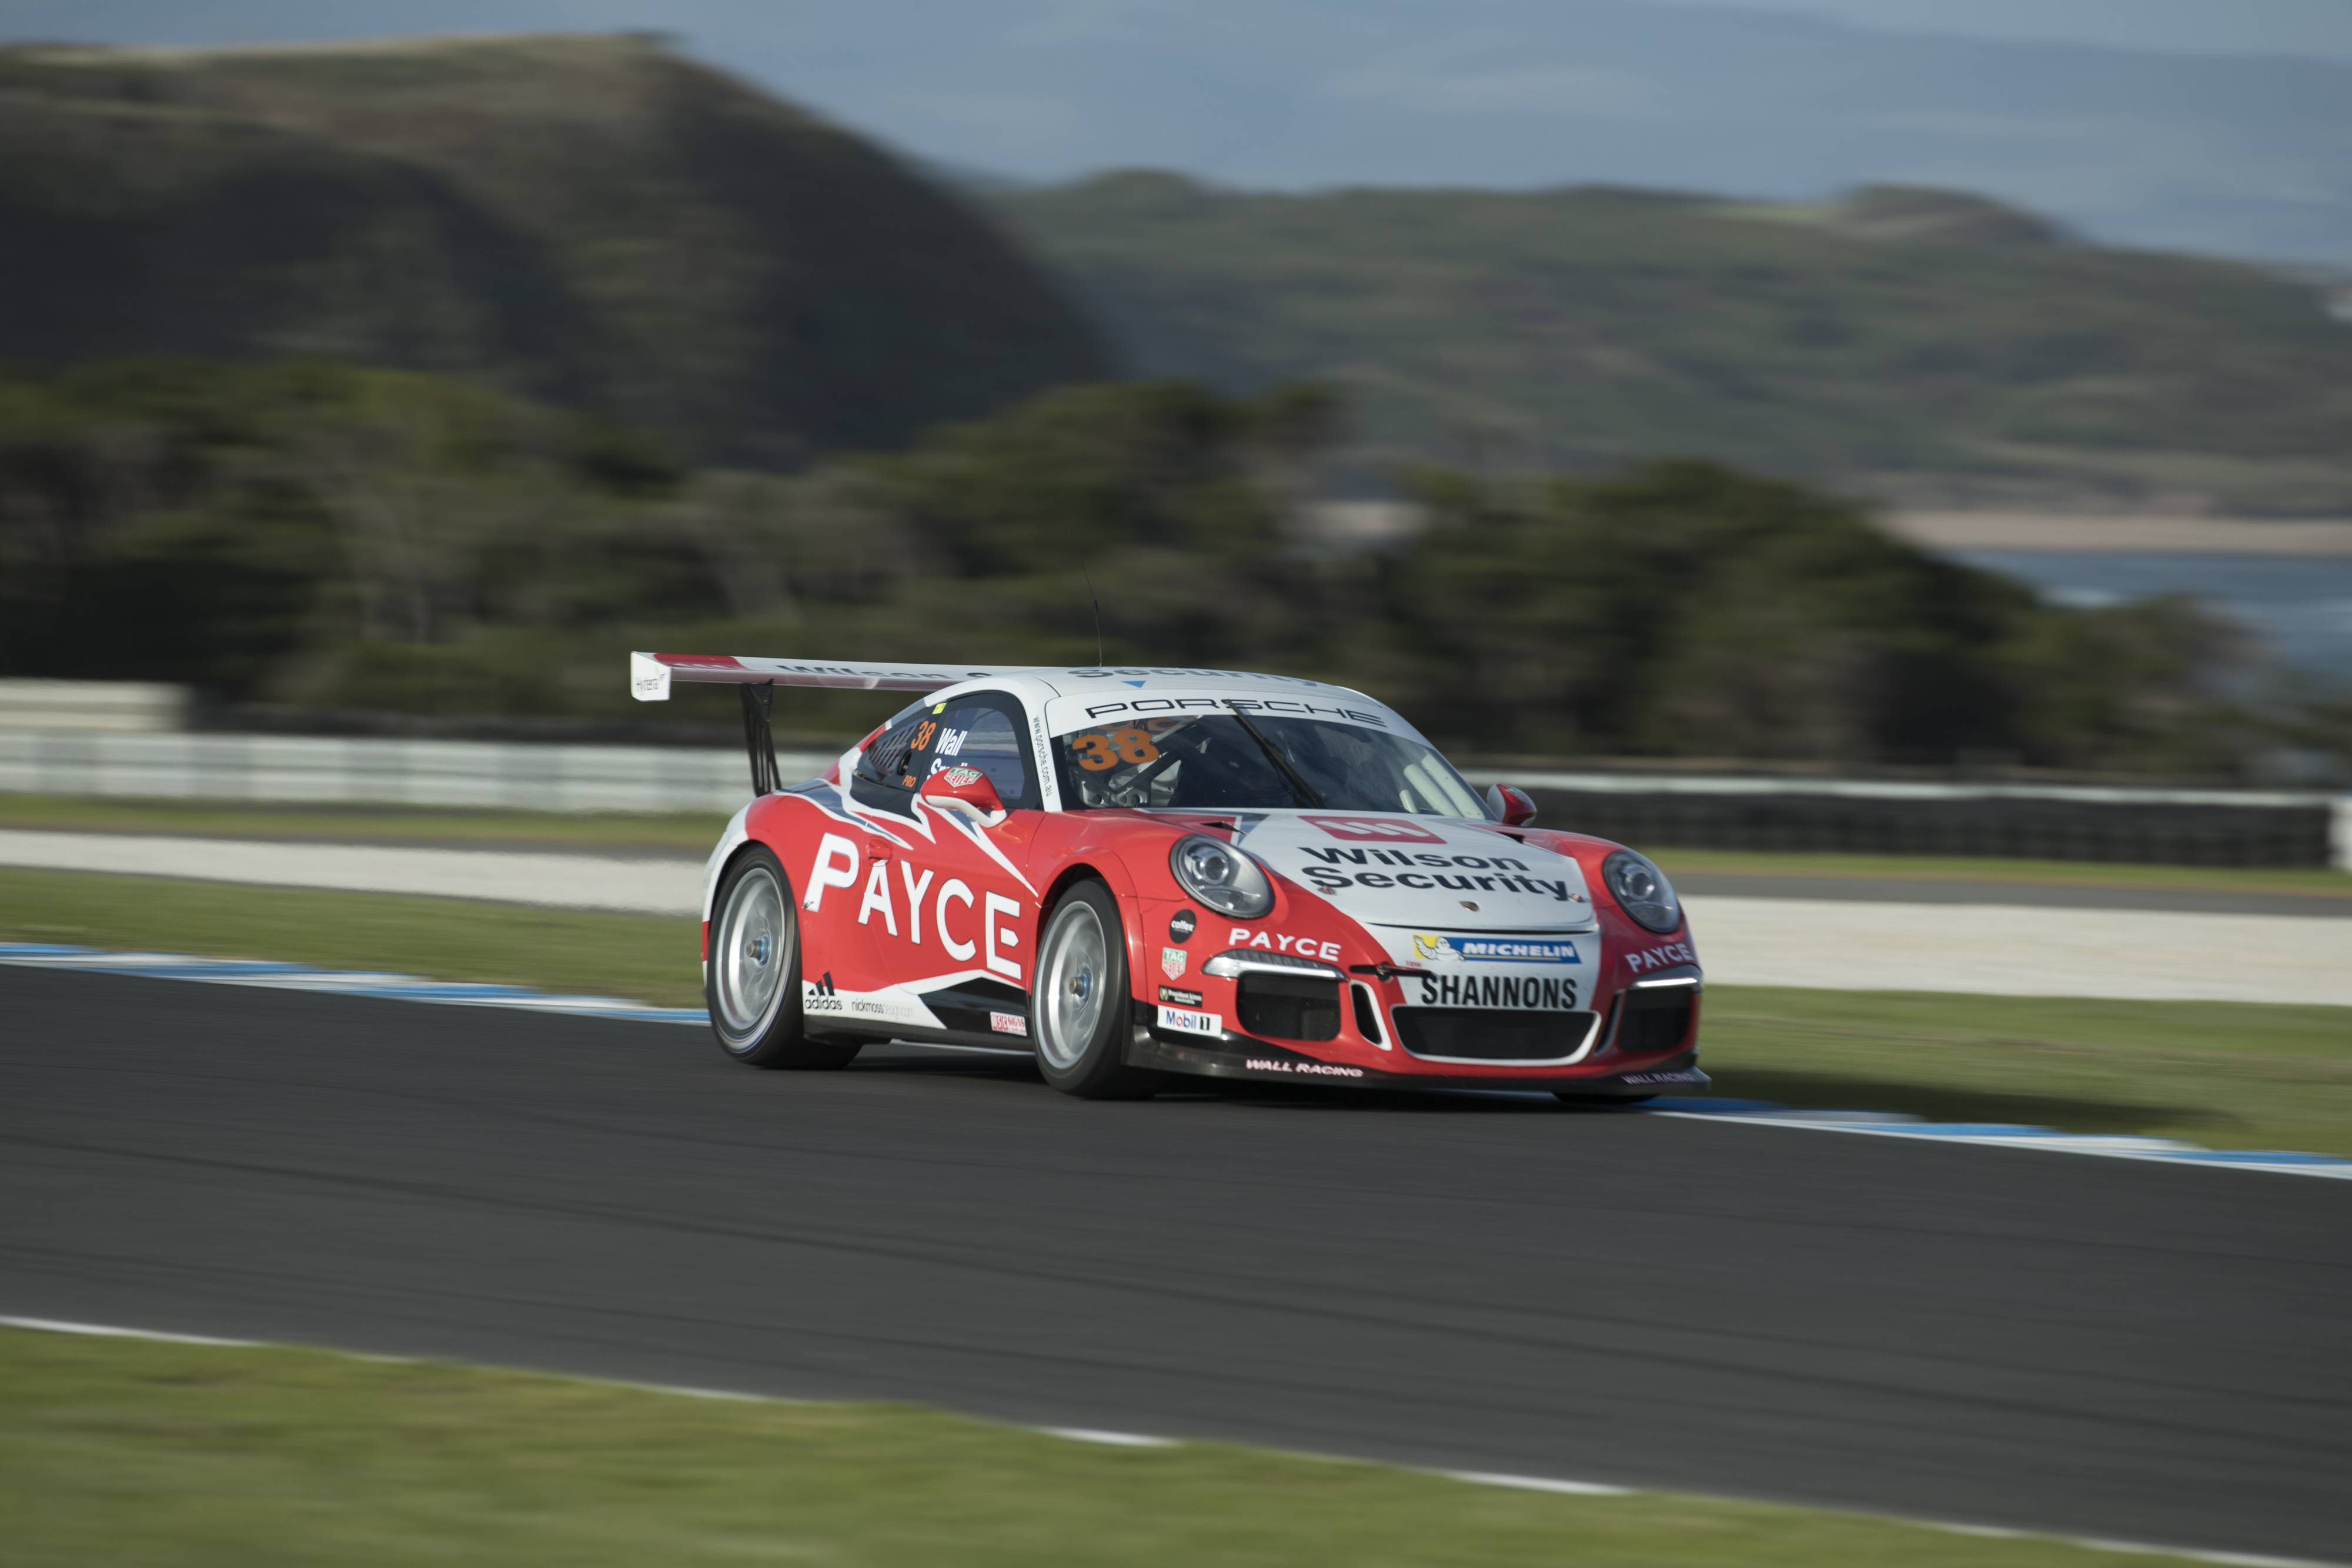 p38-Wall-CarreraCup-R3-2017-00949